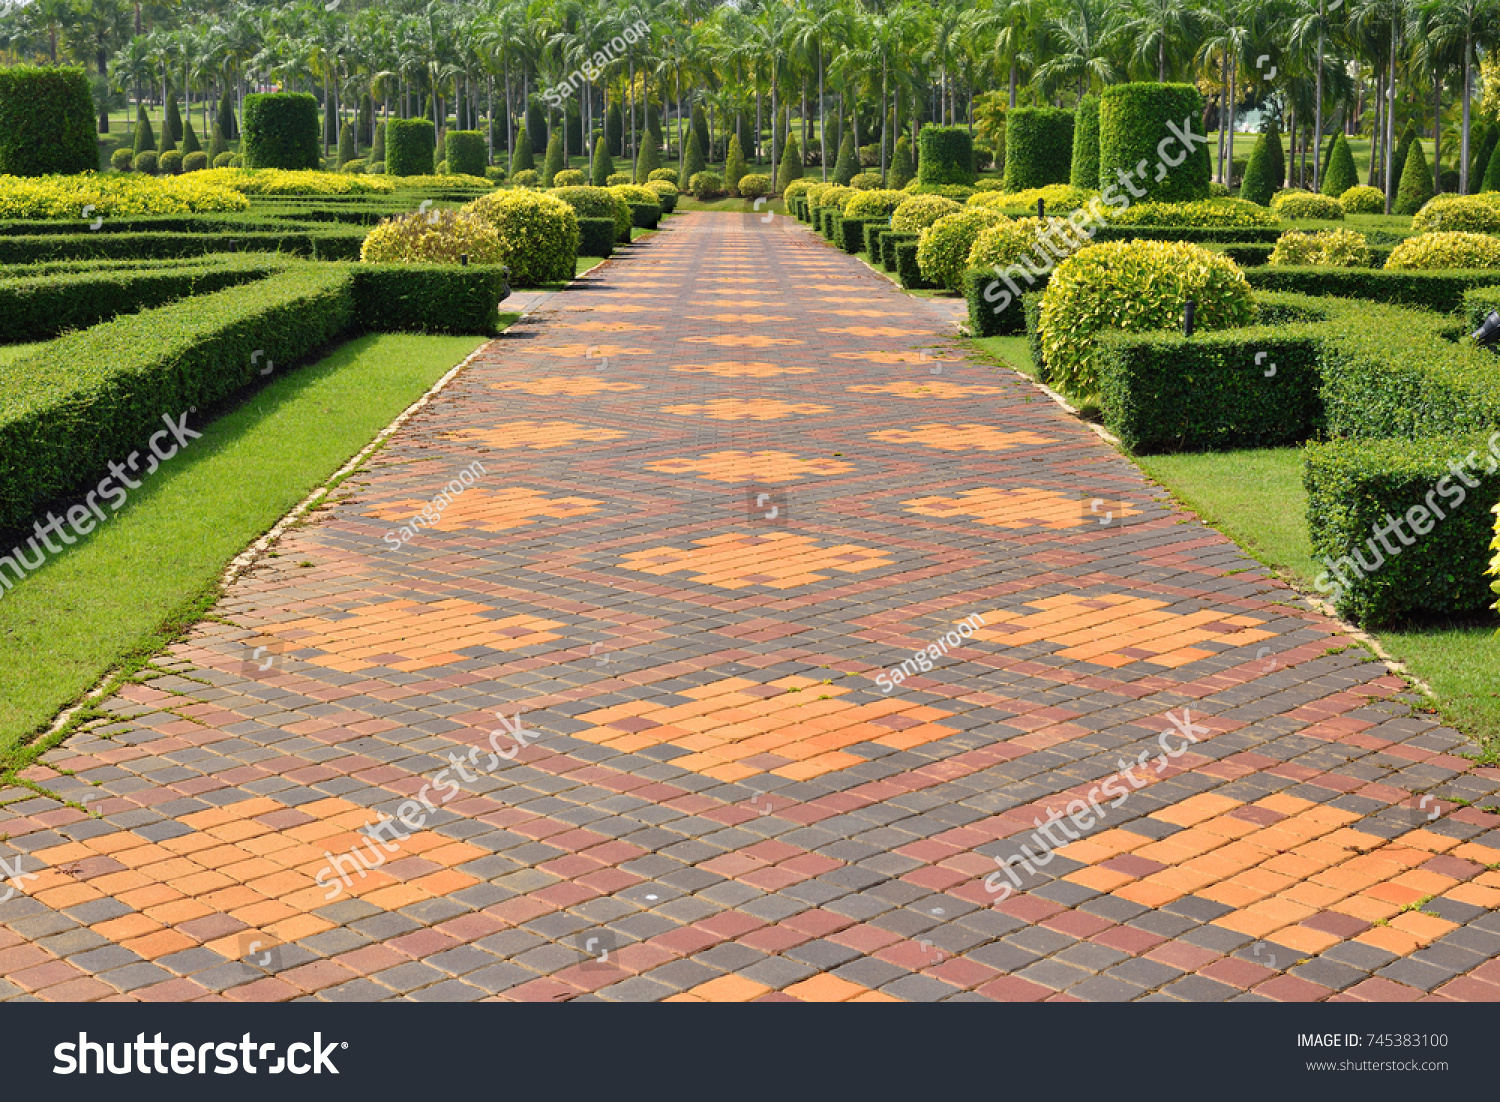 Garden Paths And Walkways, Pattern Design Of Walkway Concrete Block Paving,  Shrub And Hedge